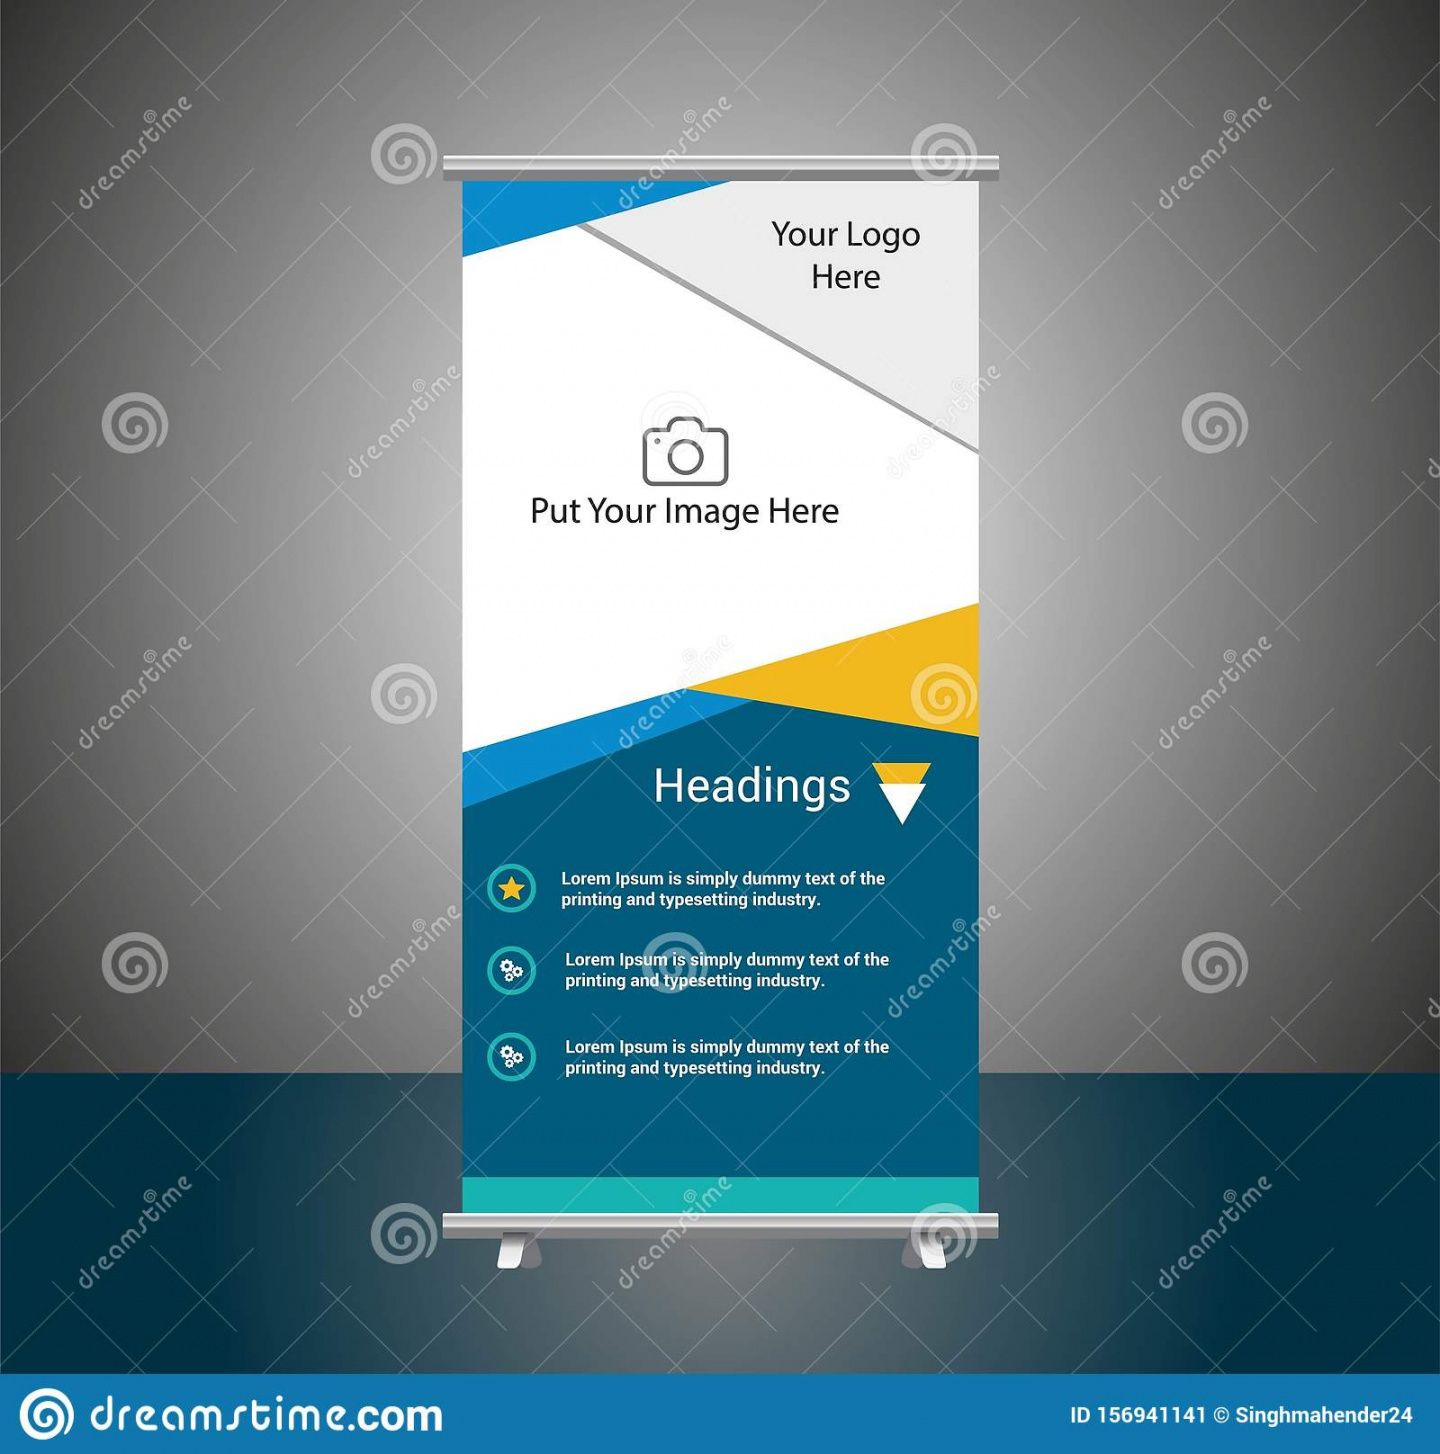 blueyellow roll up banner template vector illustration trade show banner template pdf